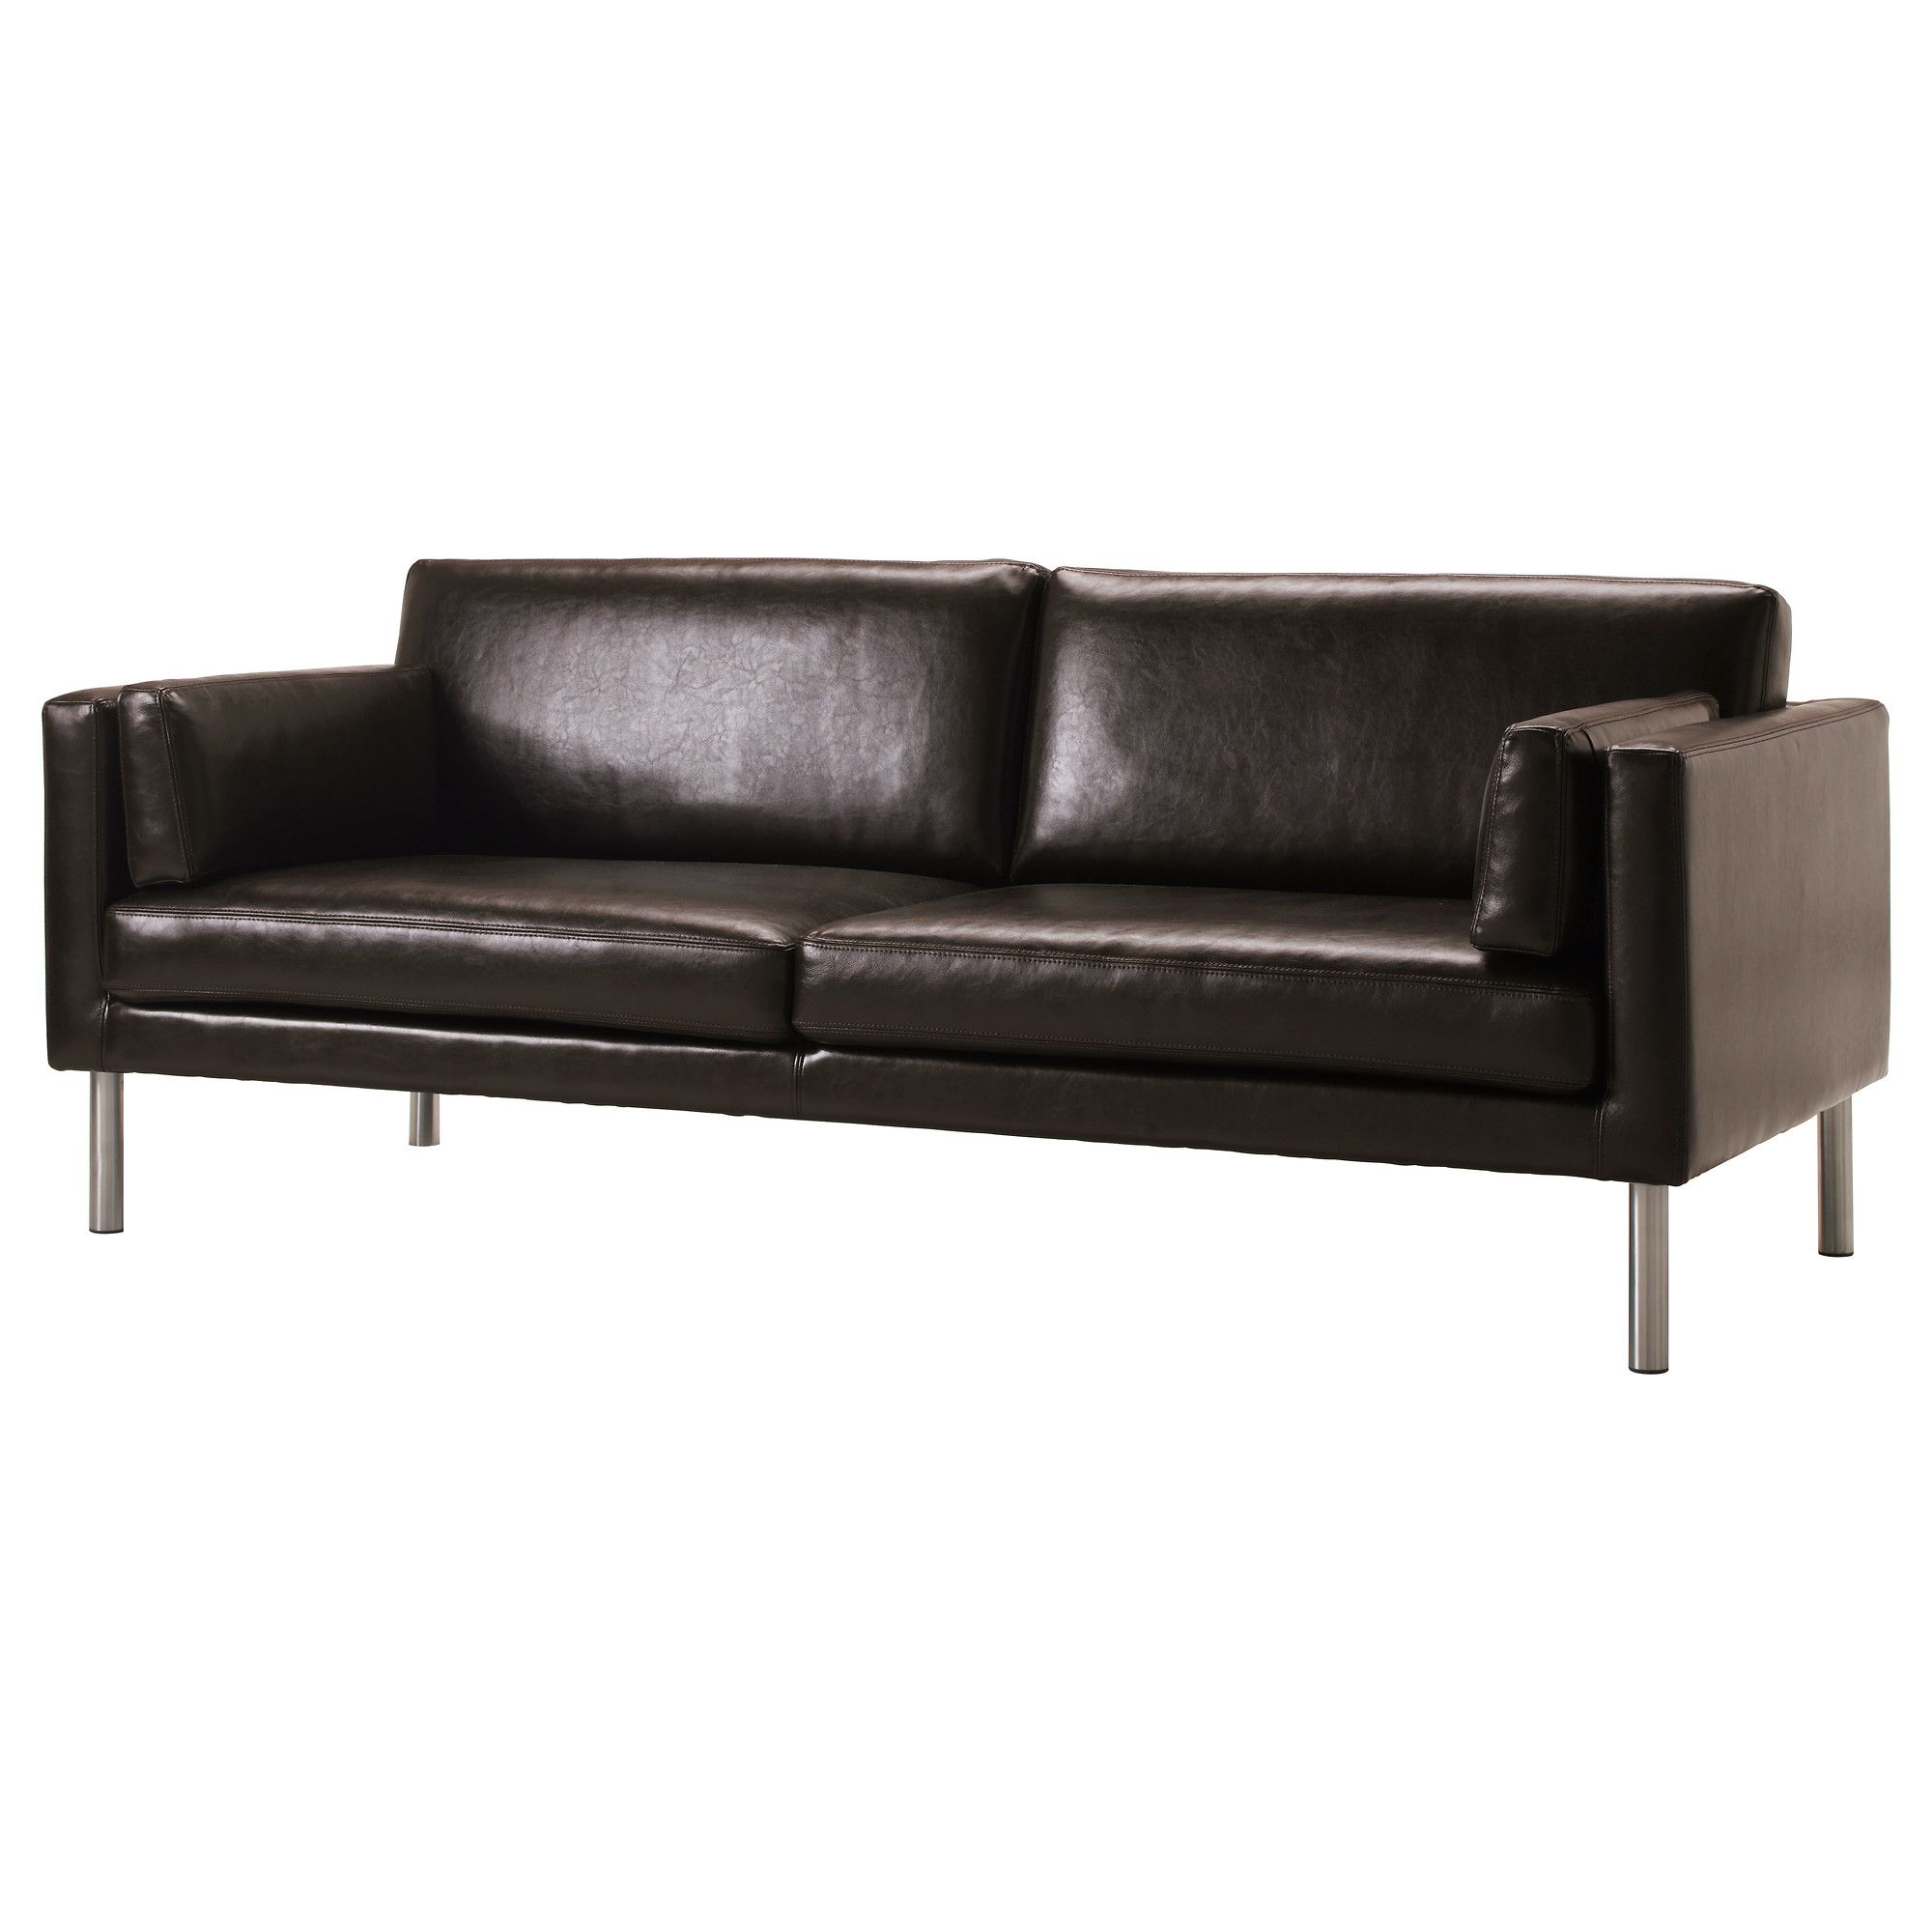 S Ter 2 5 Seat Sofa Fr Sig Dark Brown Article Number The I Word